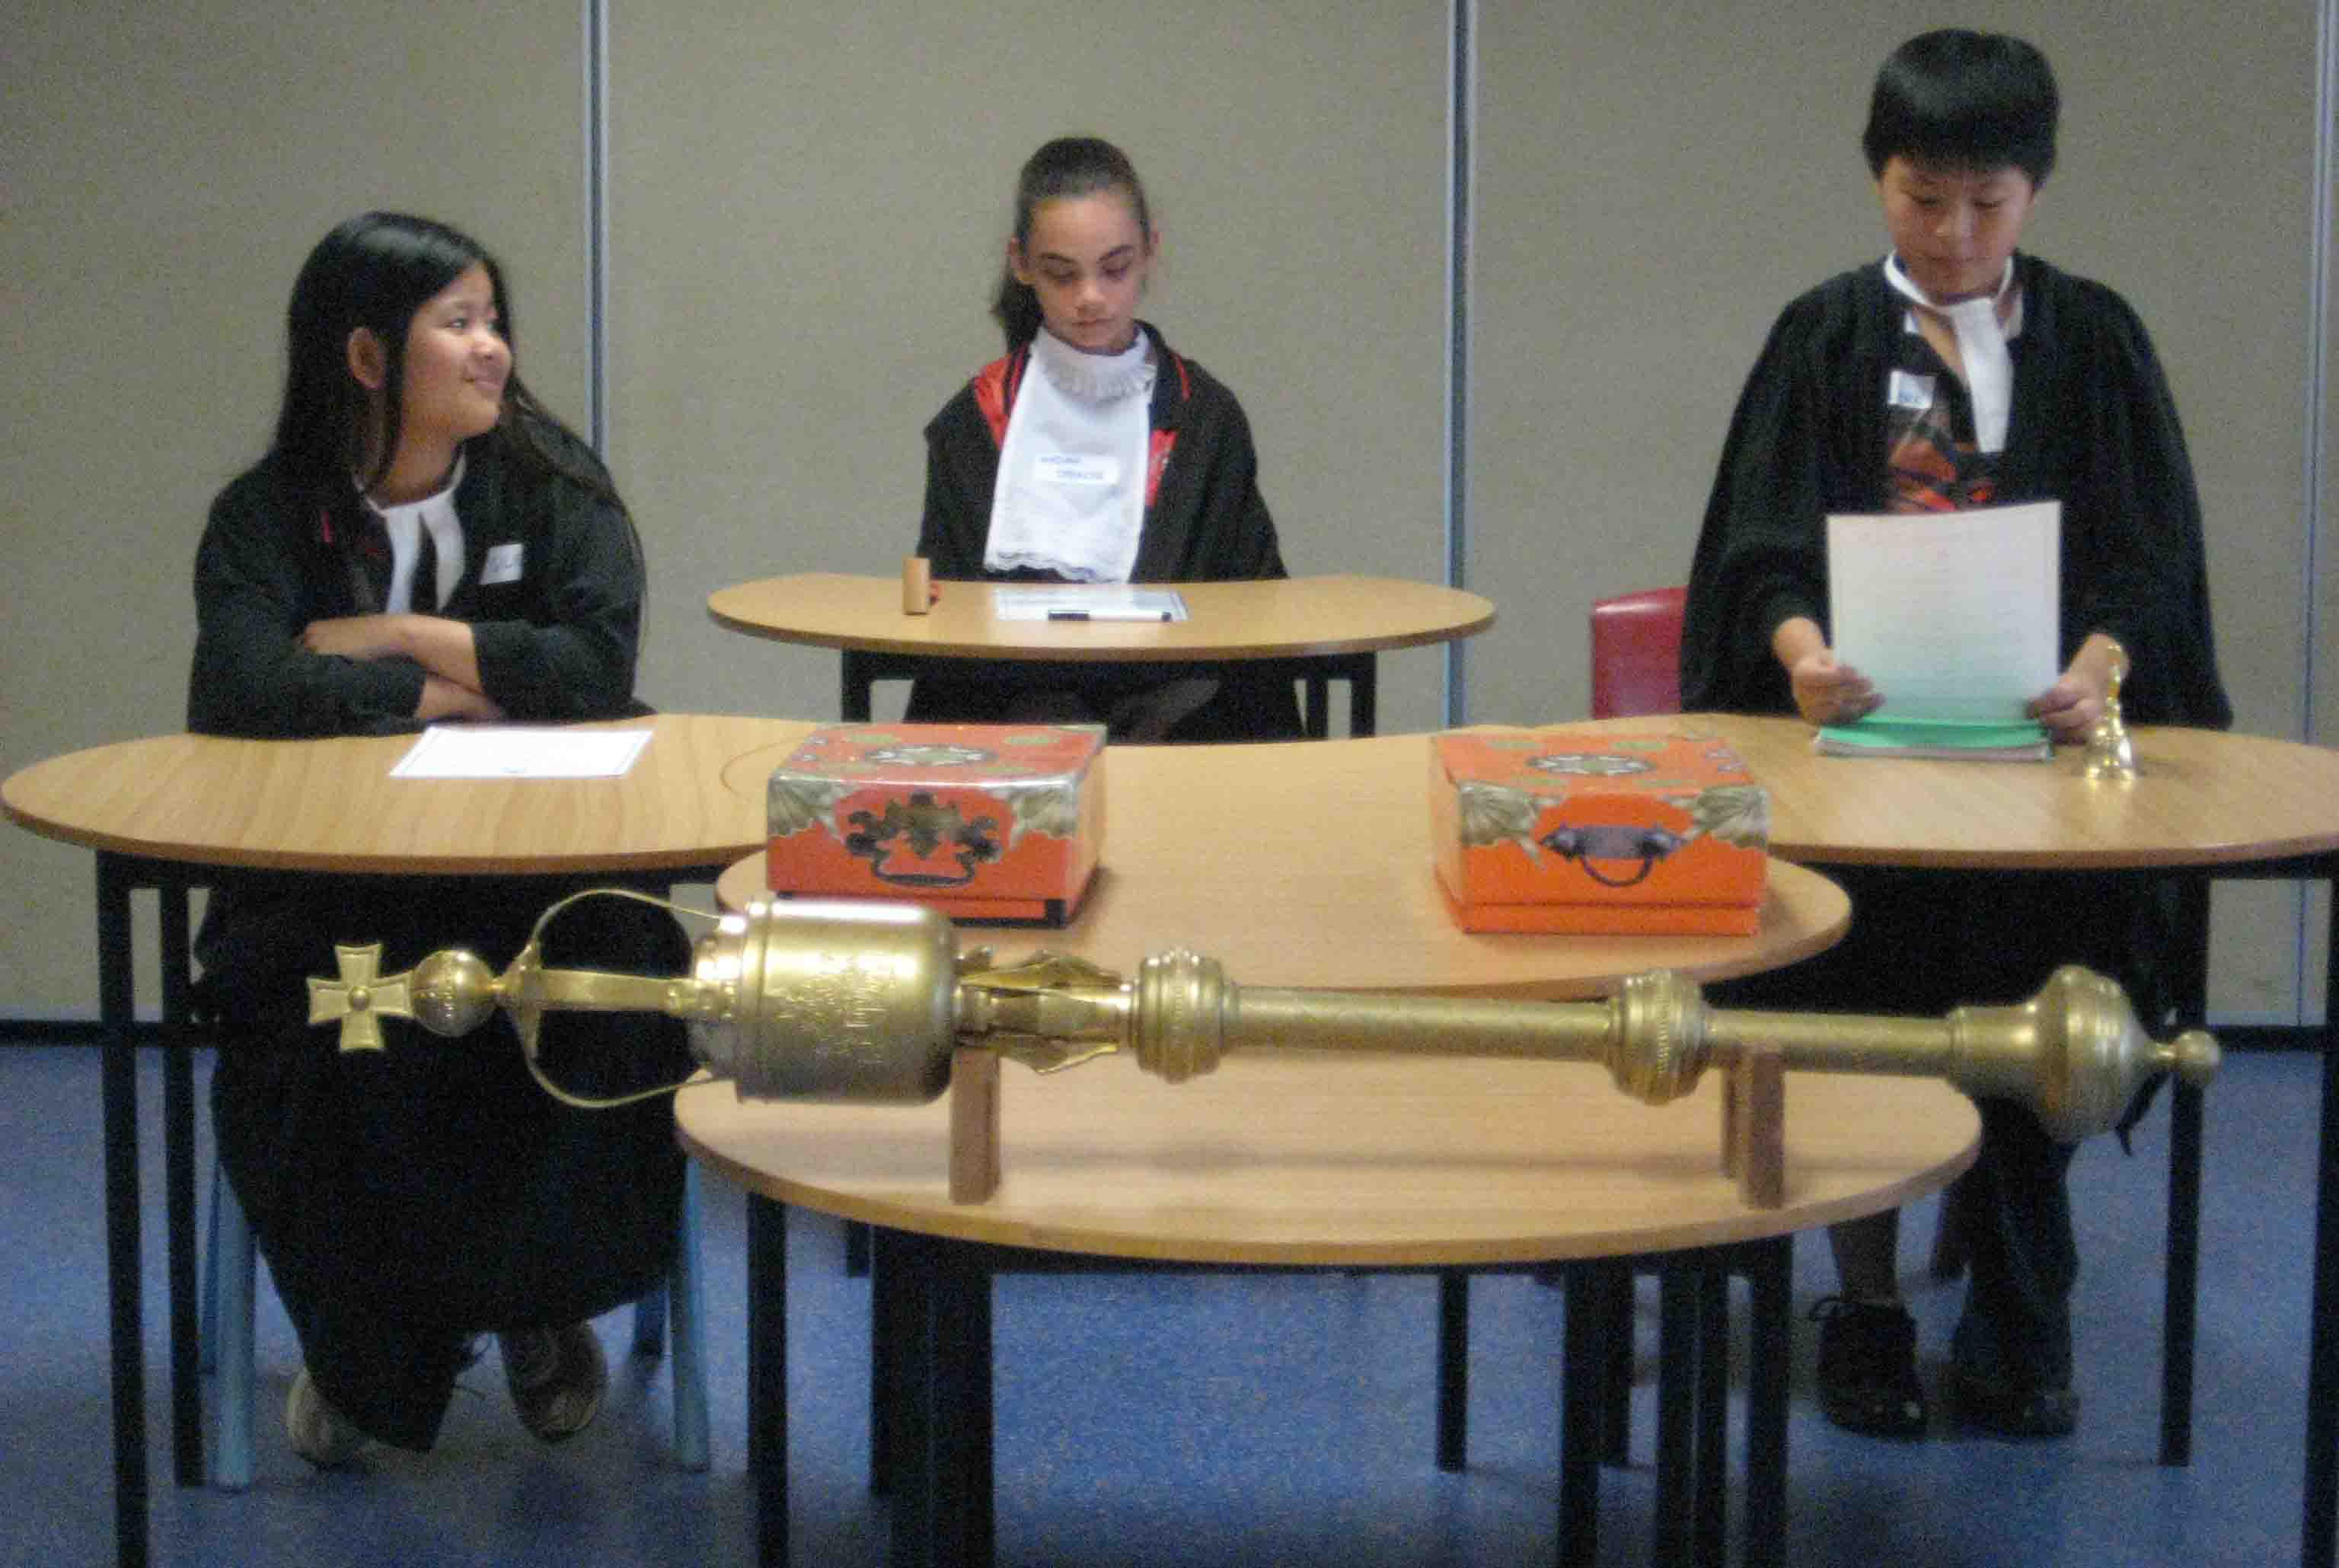 Students participating in role play